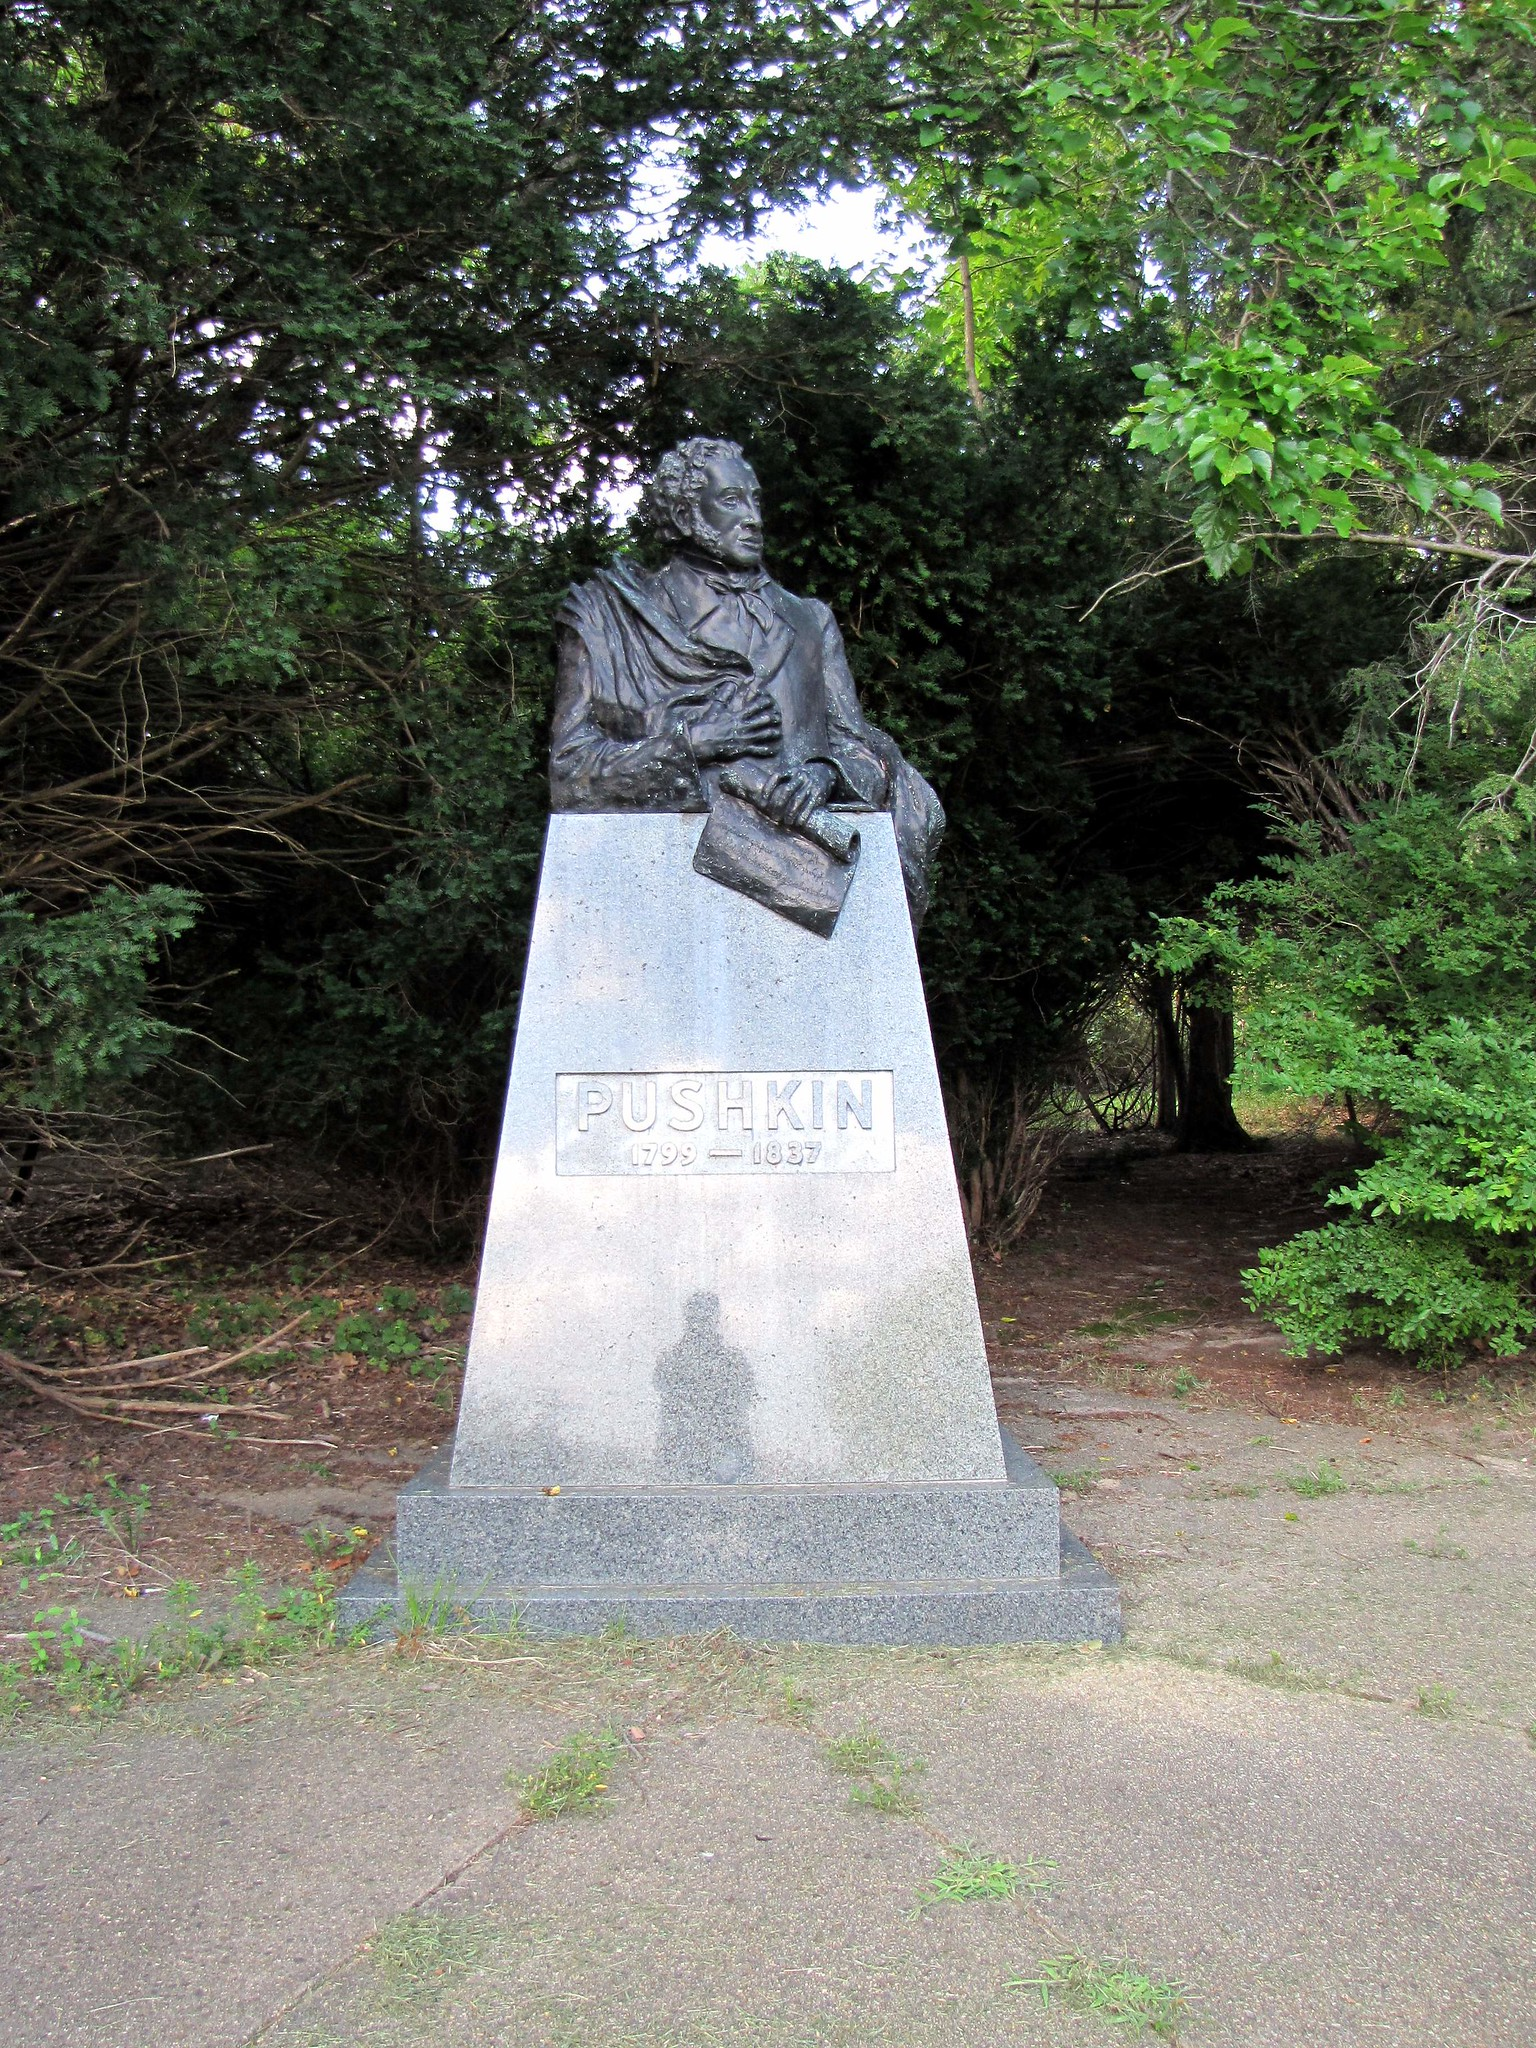 Aleksandr Pushkin Memorial